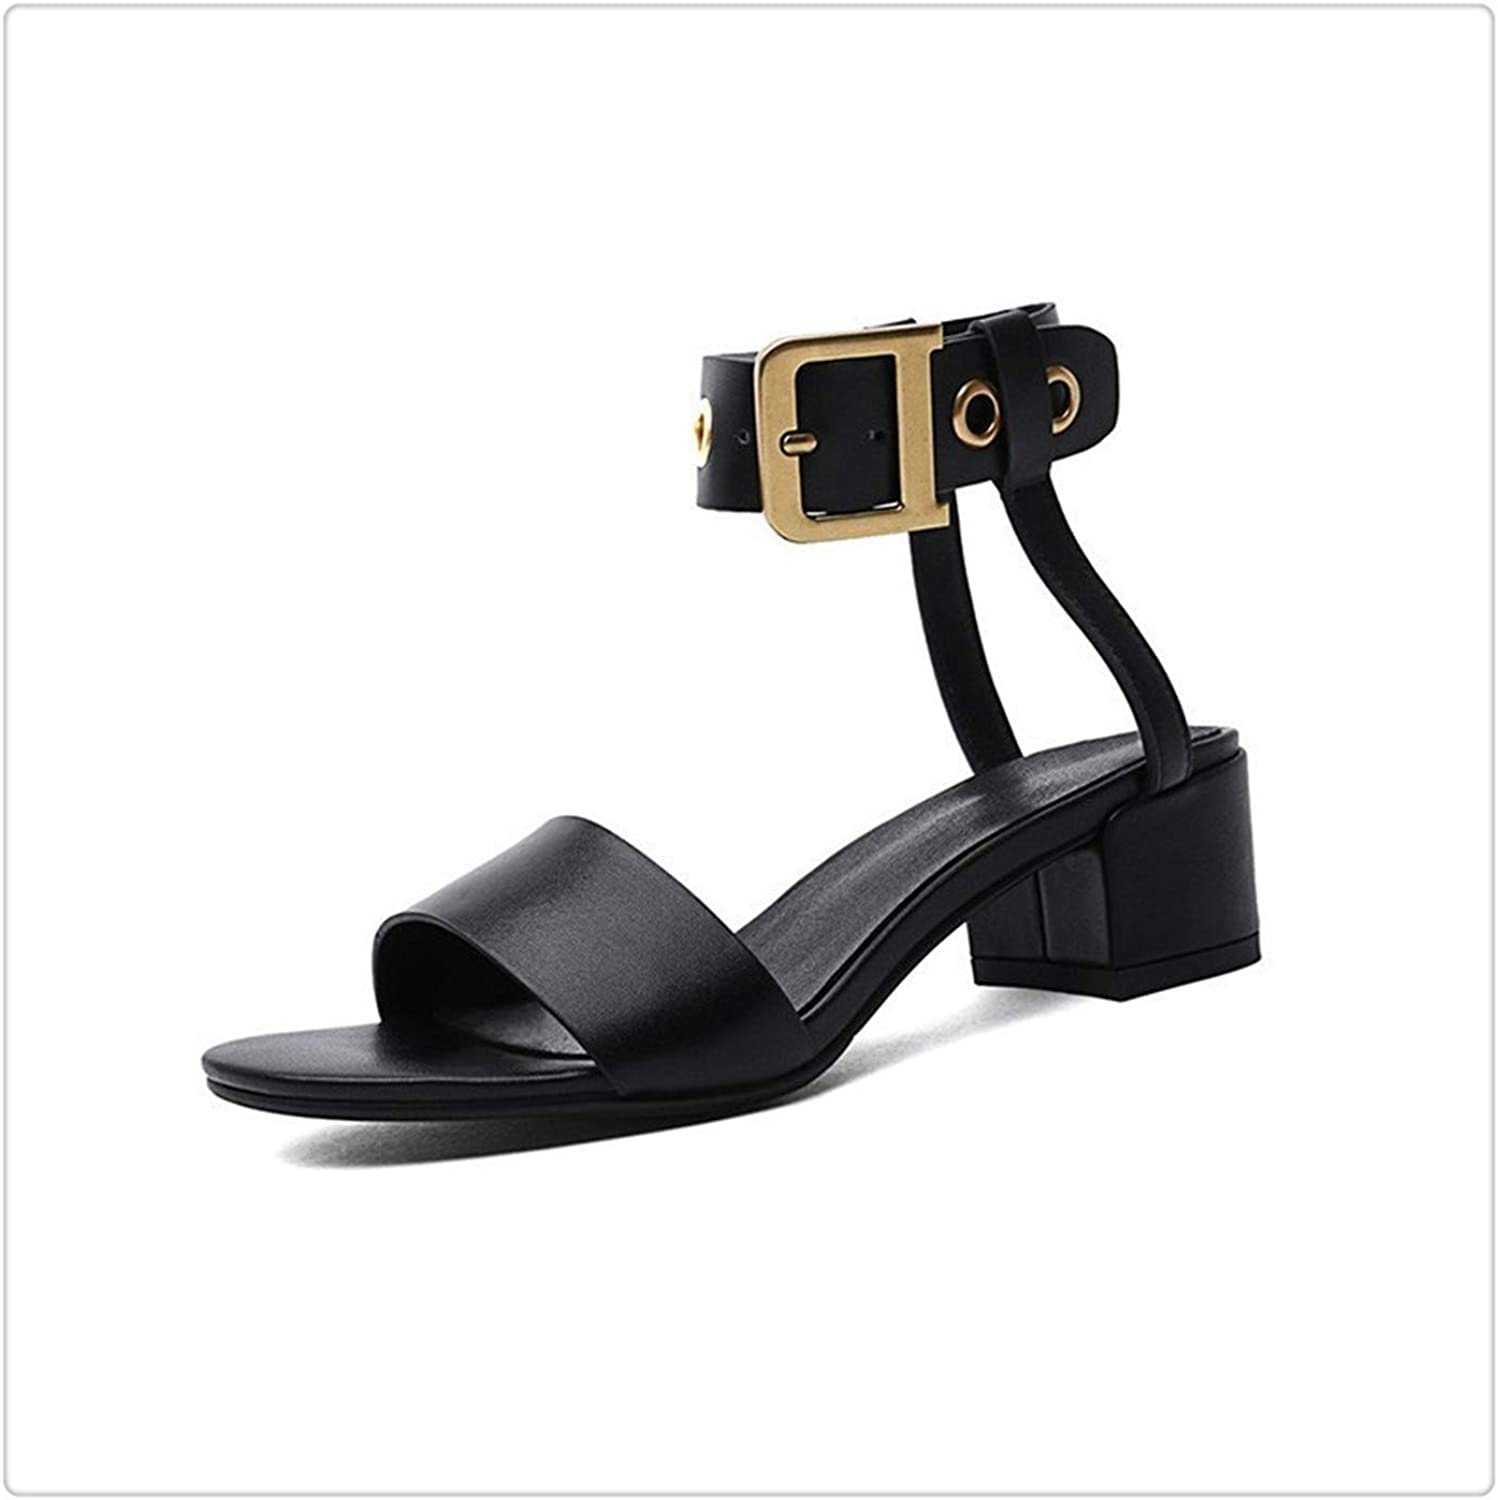 BIONGTY& 2019 New Spring Summer Round Toe Pu Leather Belt Buckle Strap Casual SimpleHigh Heels Sandals Women Fashion Tide 10SJ716 Black 37